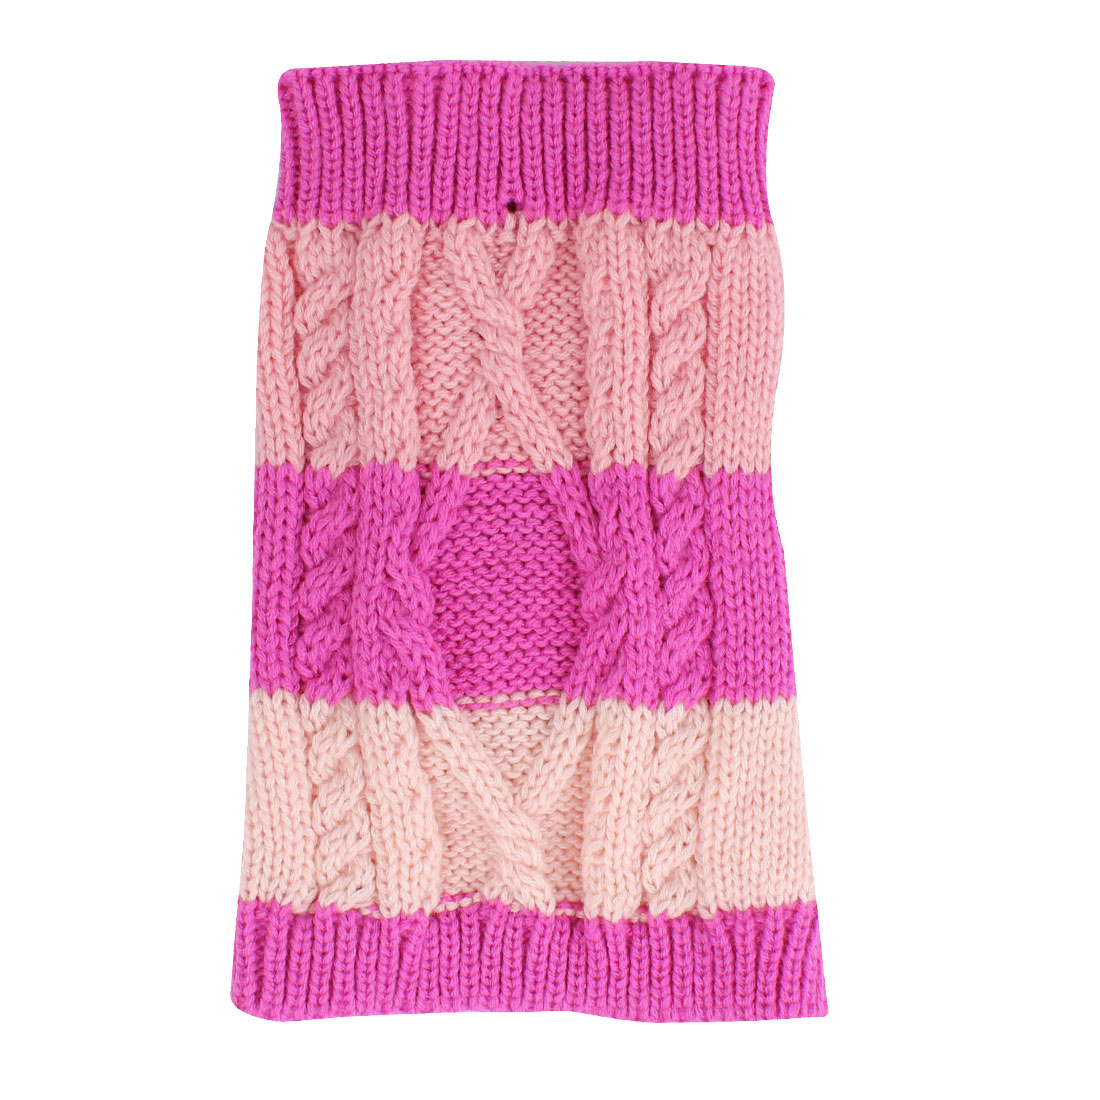 Pet Dog Puppy Twisted Knit Ribbed Hem Knitwear Apparel Sweater Coat Fuchsia Pink Size XXS